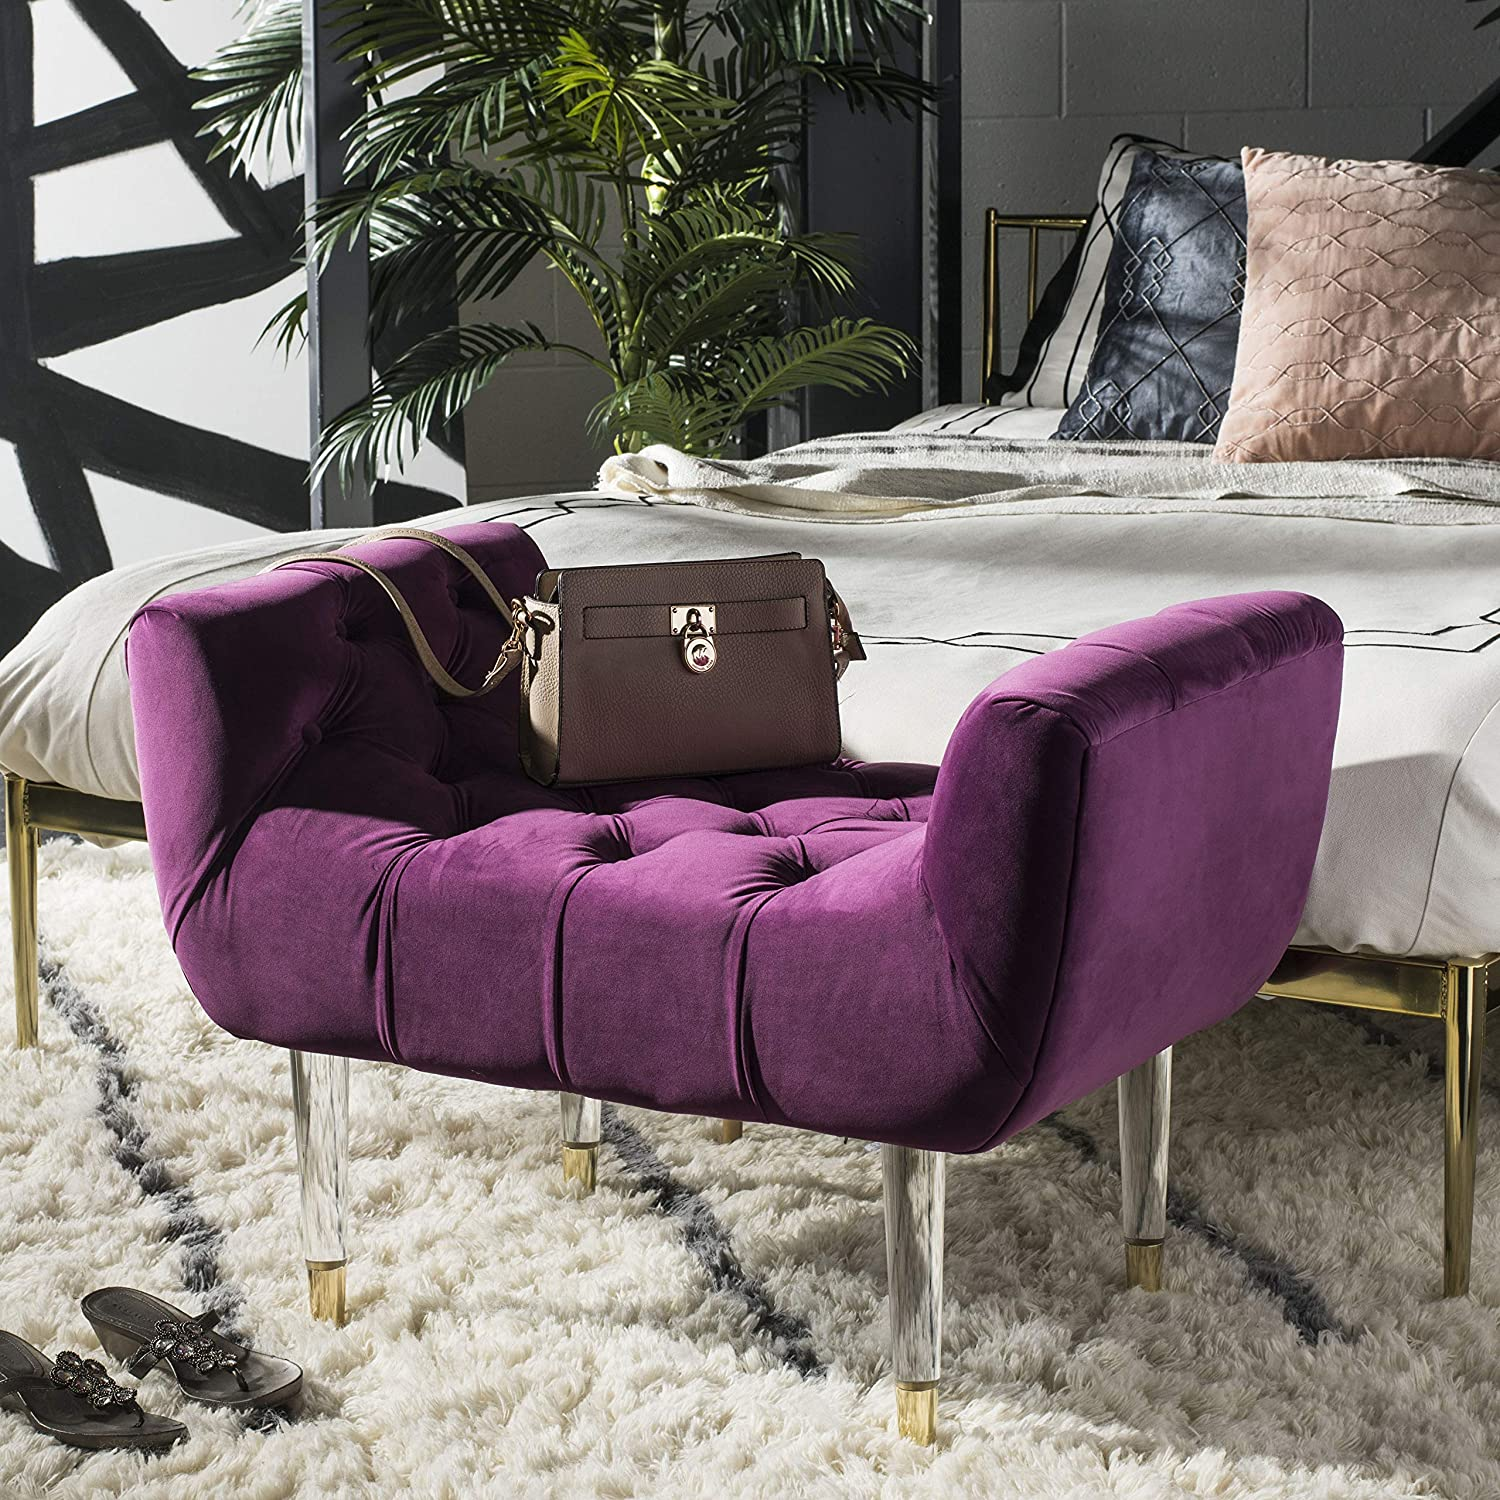 Safavieh Couture Home Eugenie 22-inch Glam Plum Velvet and Gold Tufted Acrylic Bench